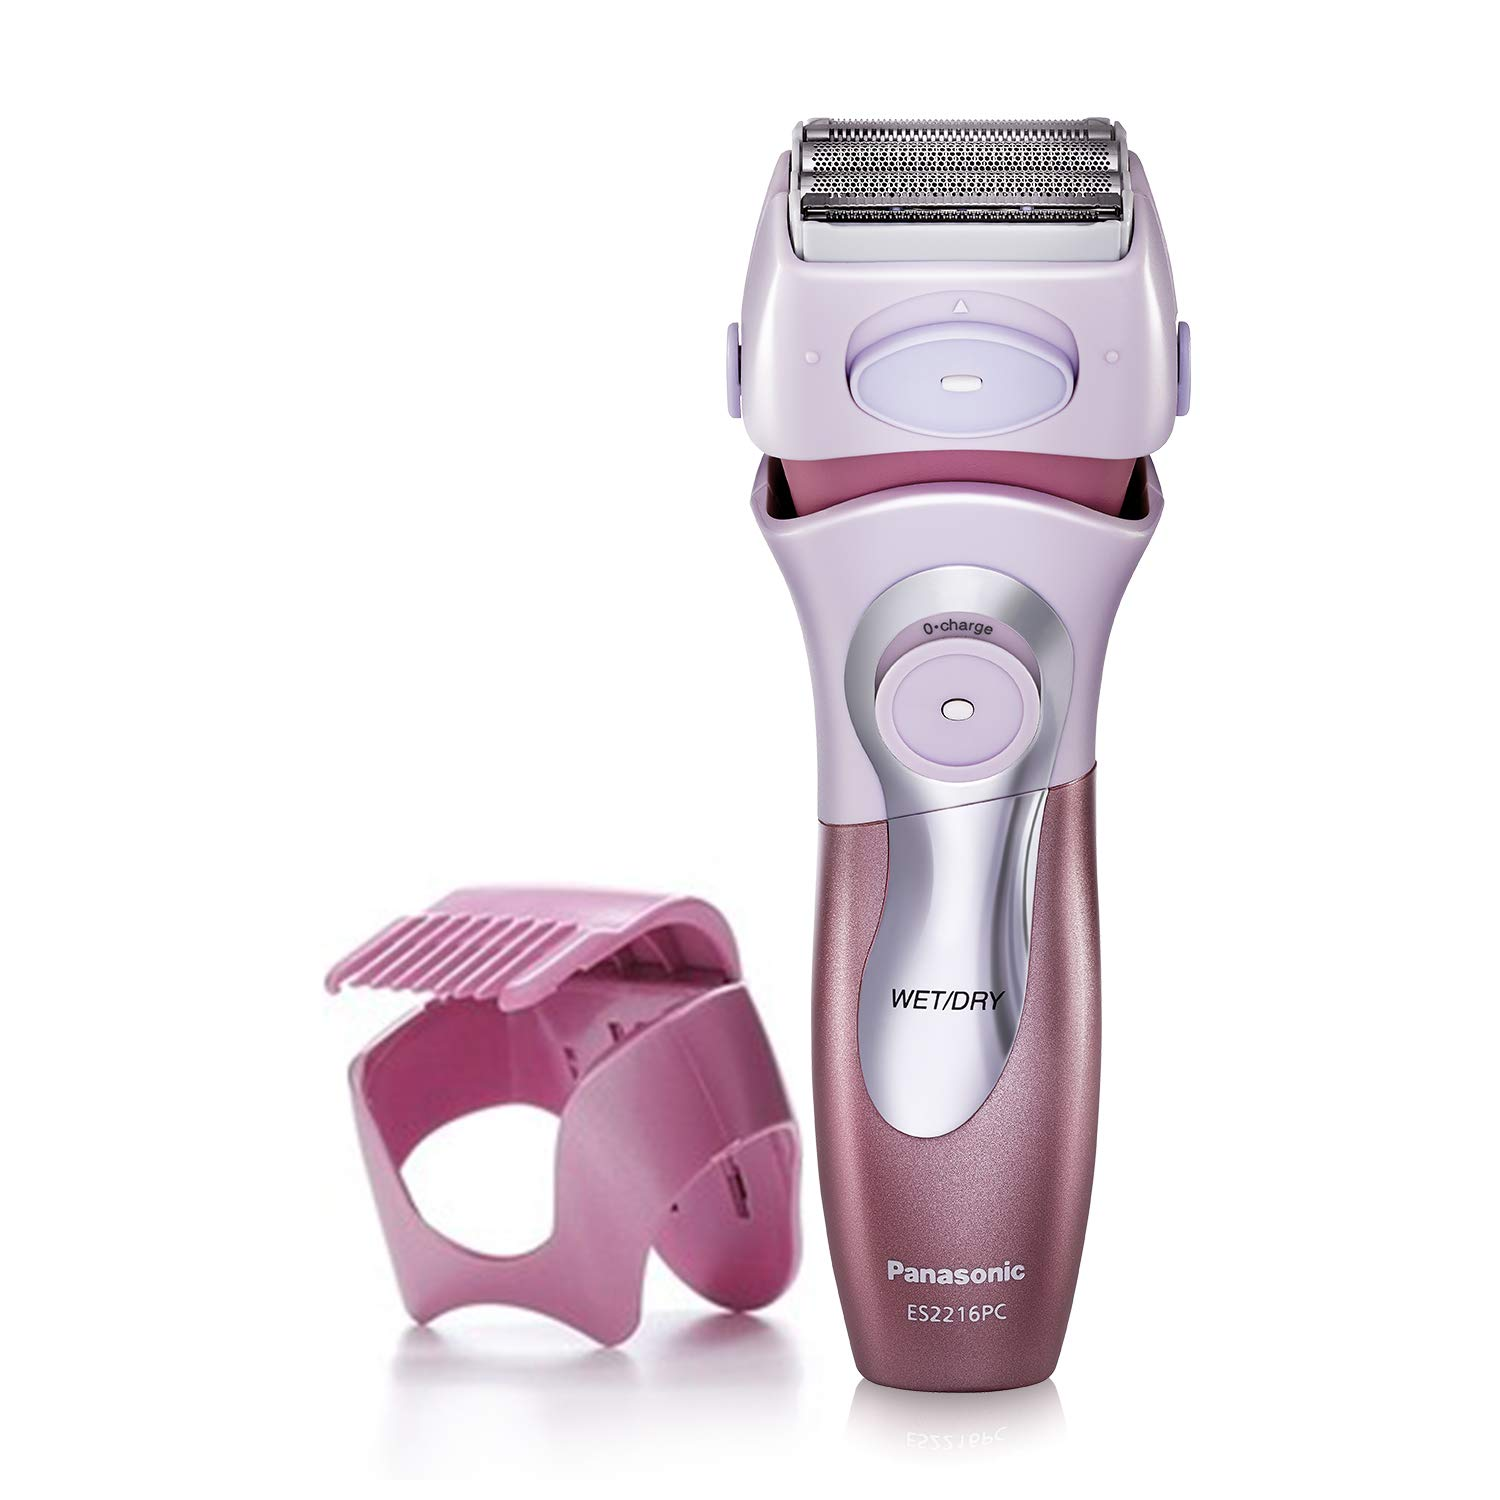 Panasonic ES2216PC Shaver